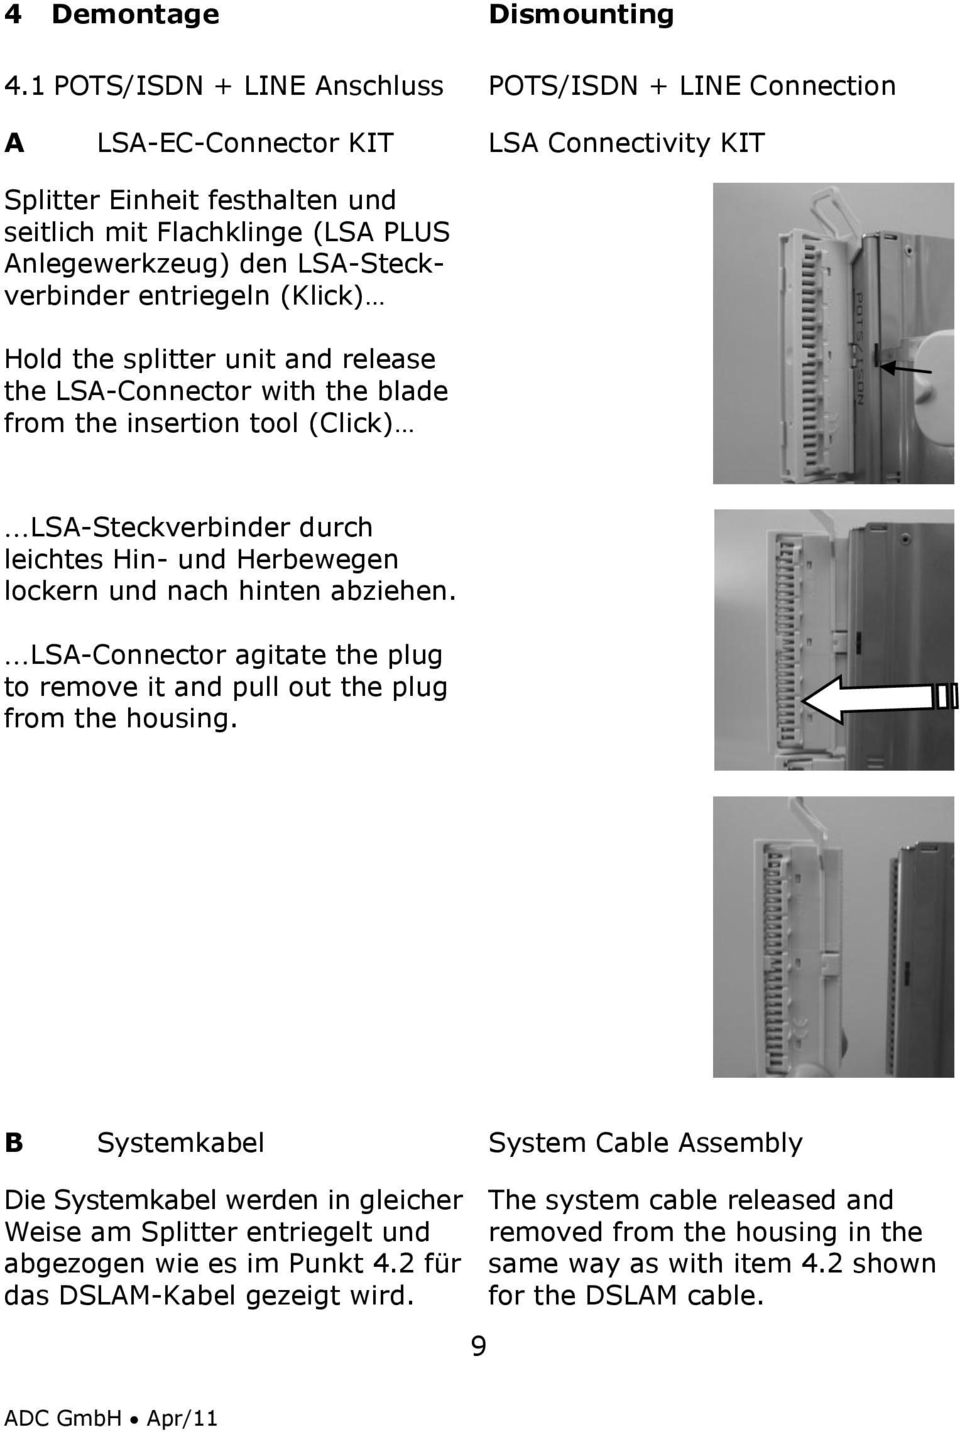 LSA-Steckverbinder entriegeln (Klick) Hold the splitter unit and release the LSA-Connector with the blade from the insertion tool (Click) LSA-Steckverbinder durch leichtes Hin- und Herbewegen lockern